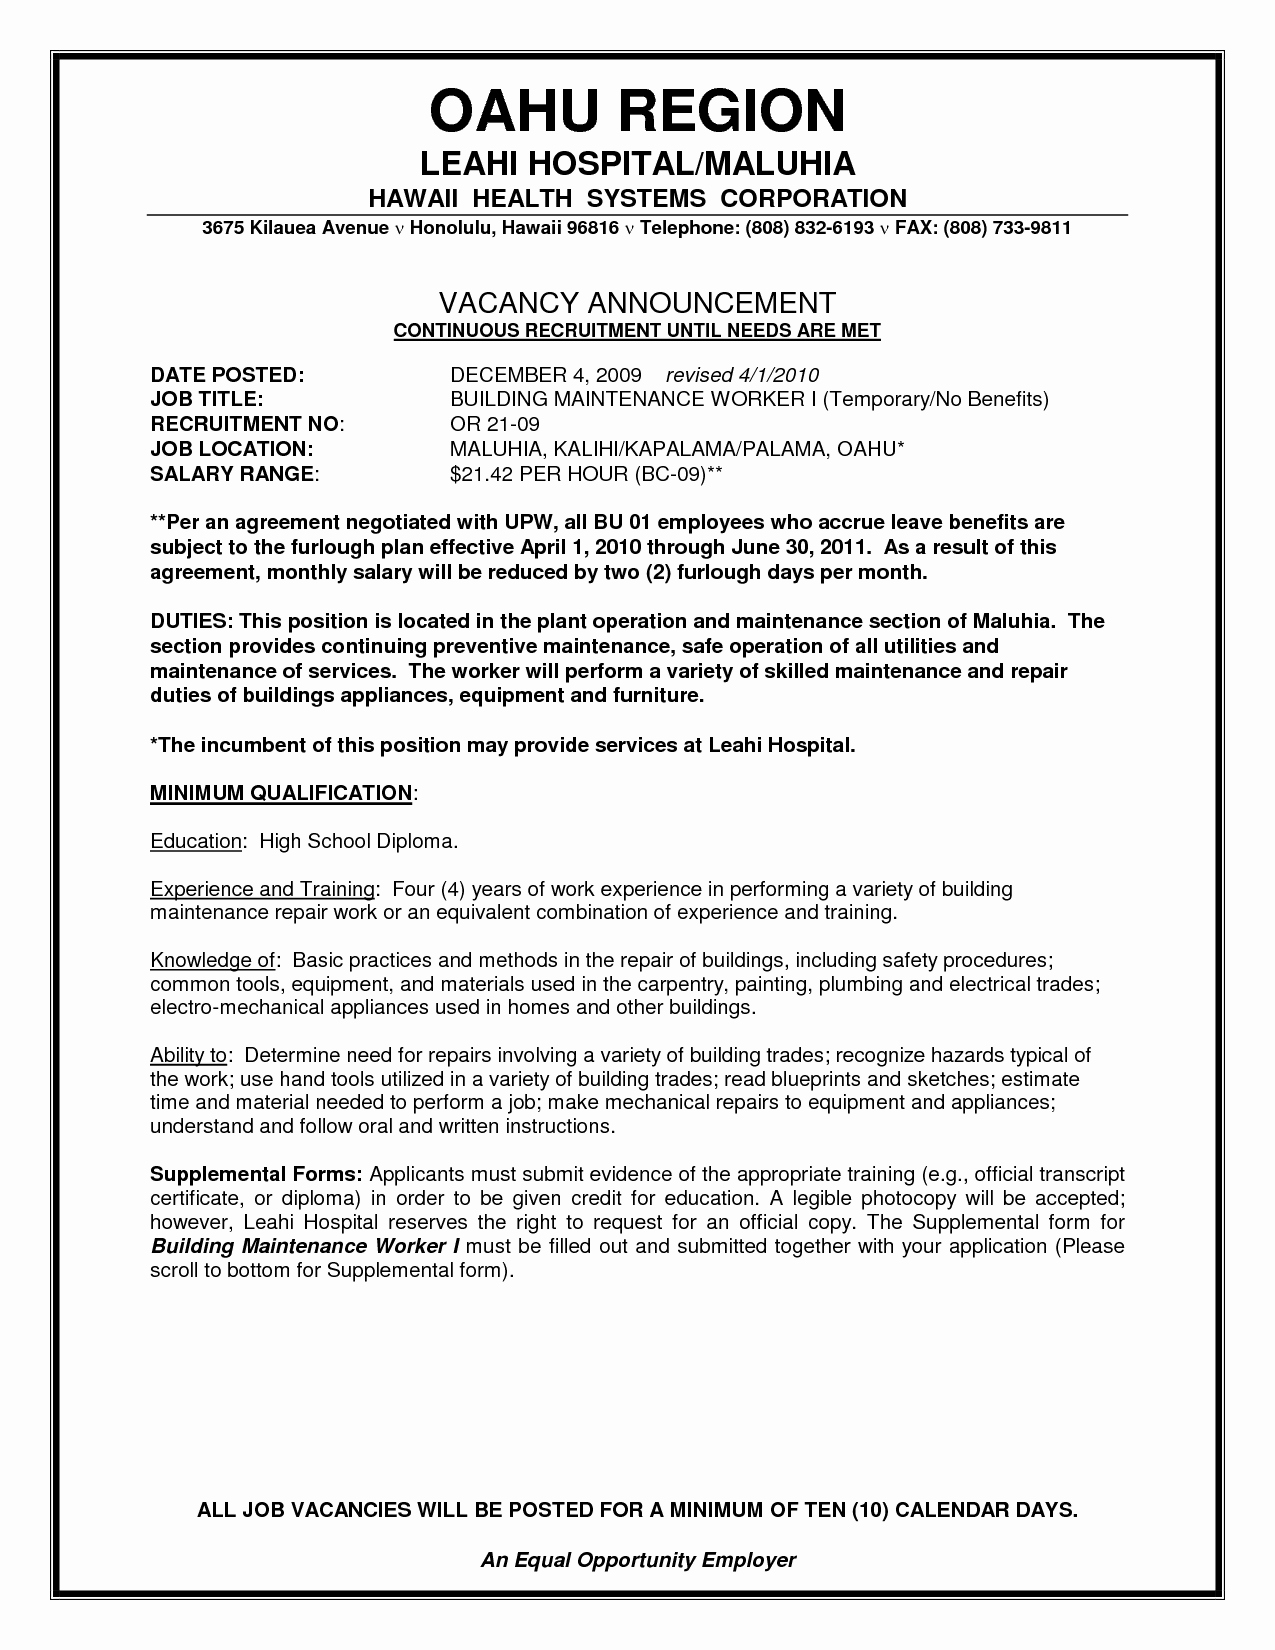 Separation Agreement Template Nc Awesome Best S Of Nc Separation Agreement Template Legal